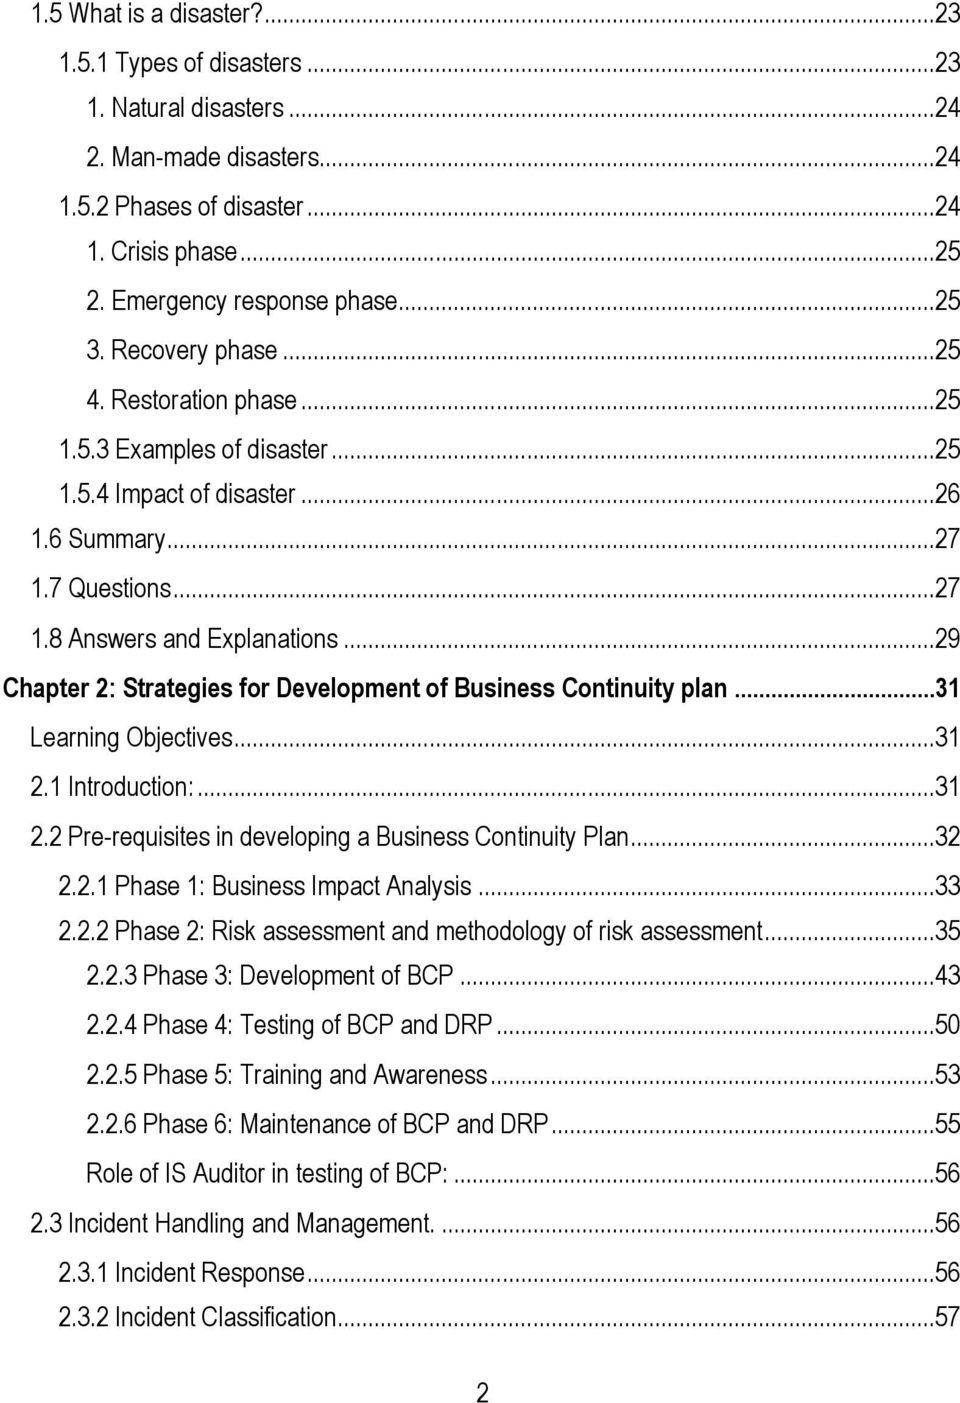 ..29 Chapter 2: Strategies for Development of Business Continuity plan...31 Learning Objectives...31 2.1 Introduction:...31 2.2 Pre-requisites in developing a Business Continuity Plan...32 2.2.1 Phase 1: Business Impact Analysis.